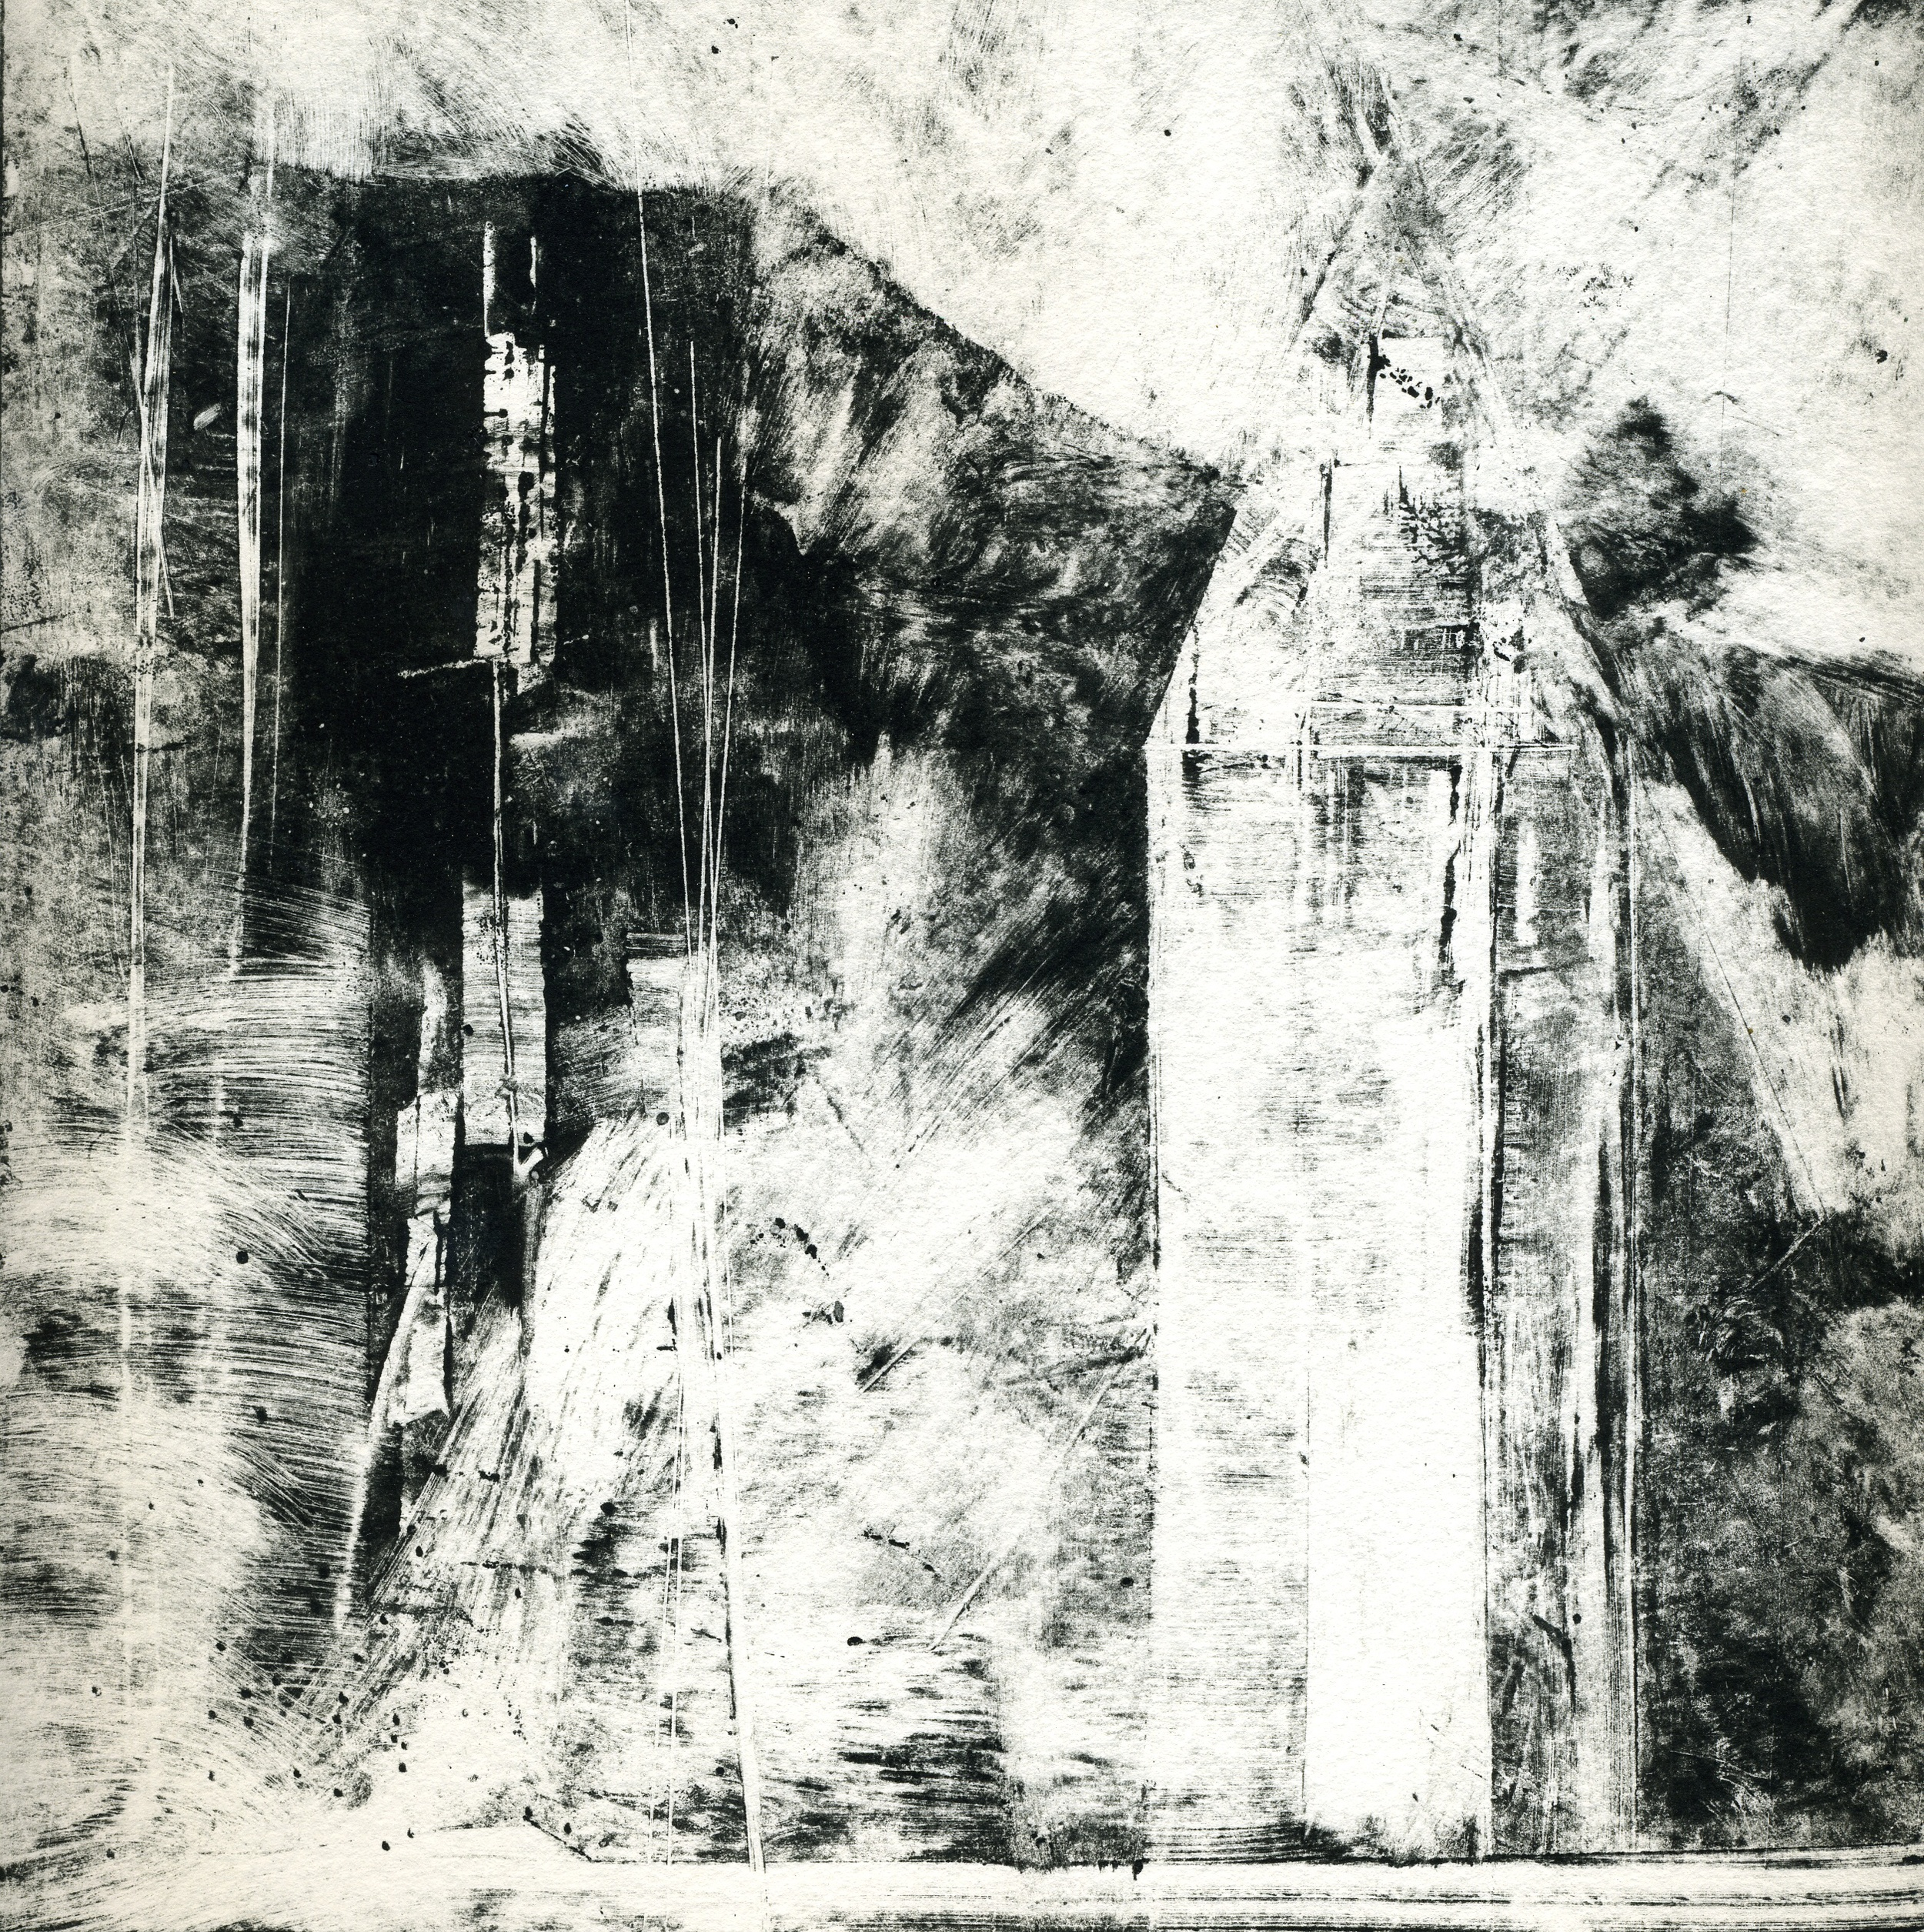 A monotype print by Clive Knights from his Lunigiana series exploring experiences from his sabbatical in the Lunigiana